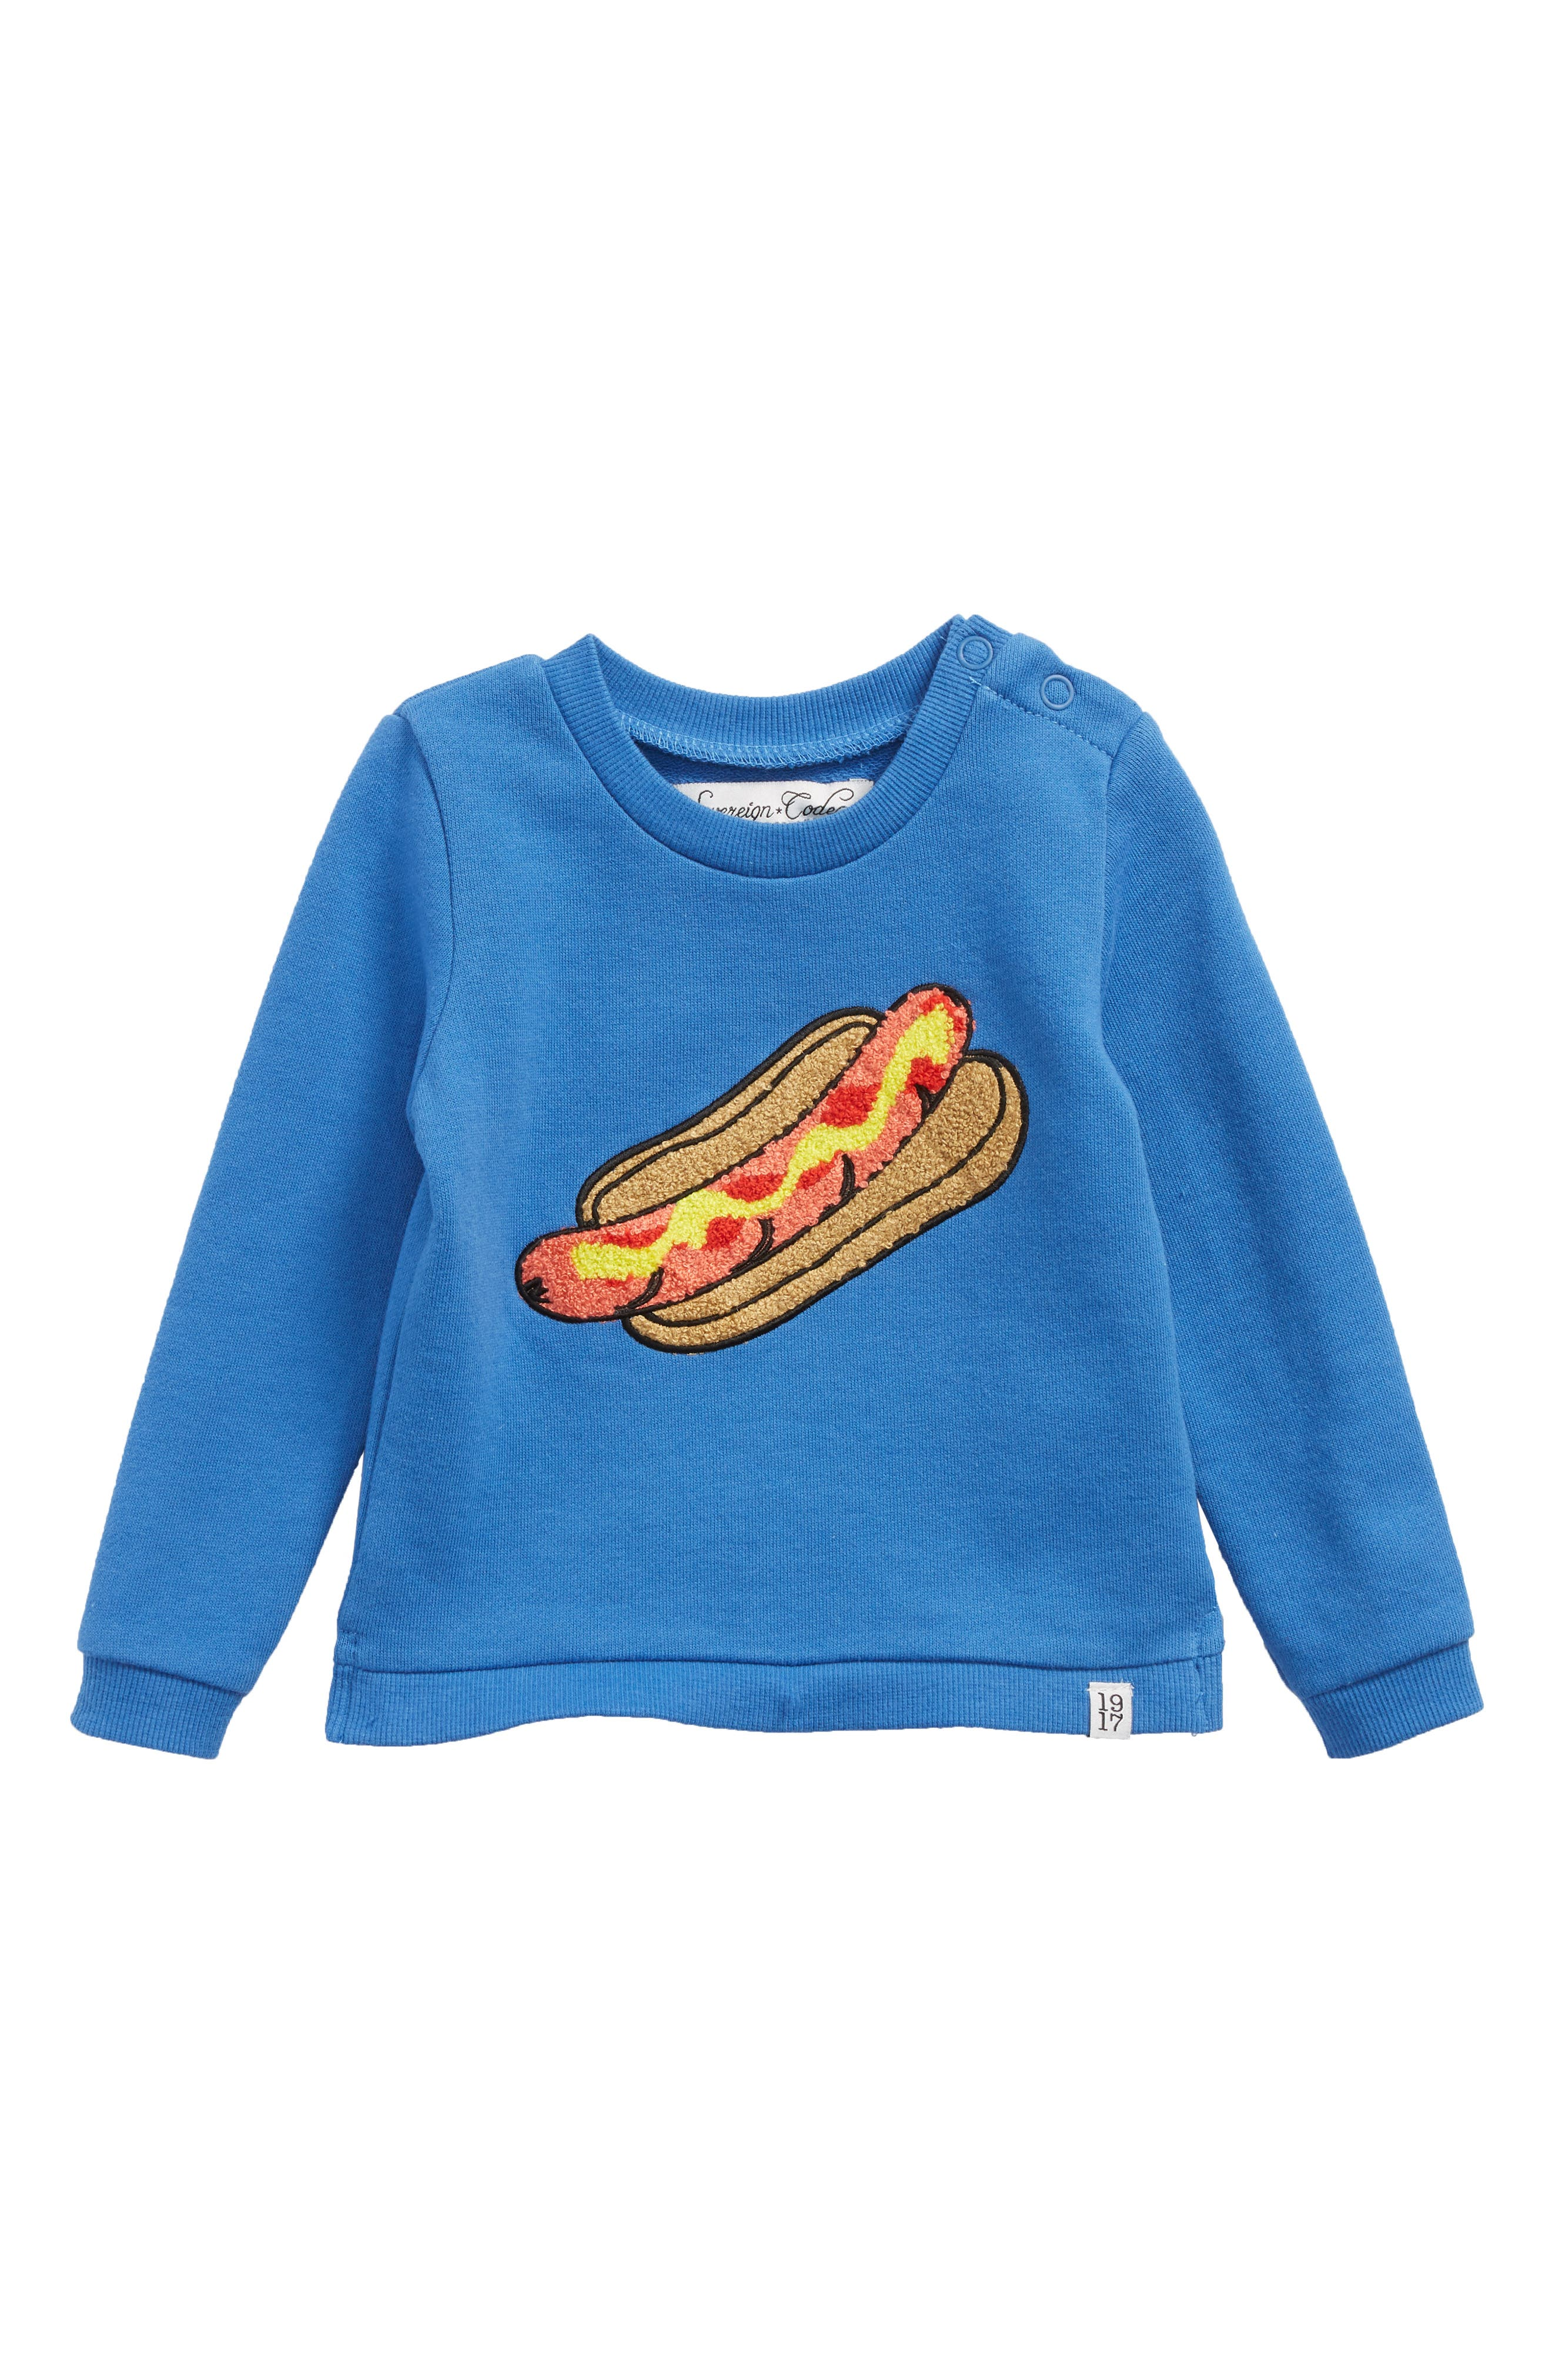 Whoa Sweatshirt,                         Main,                         color,